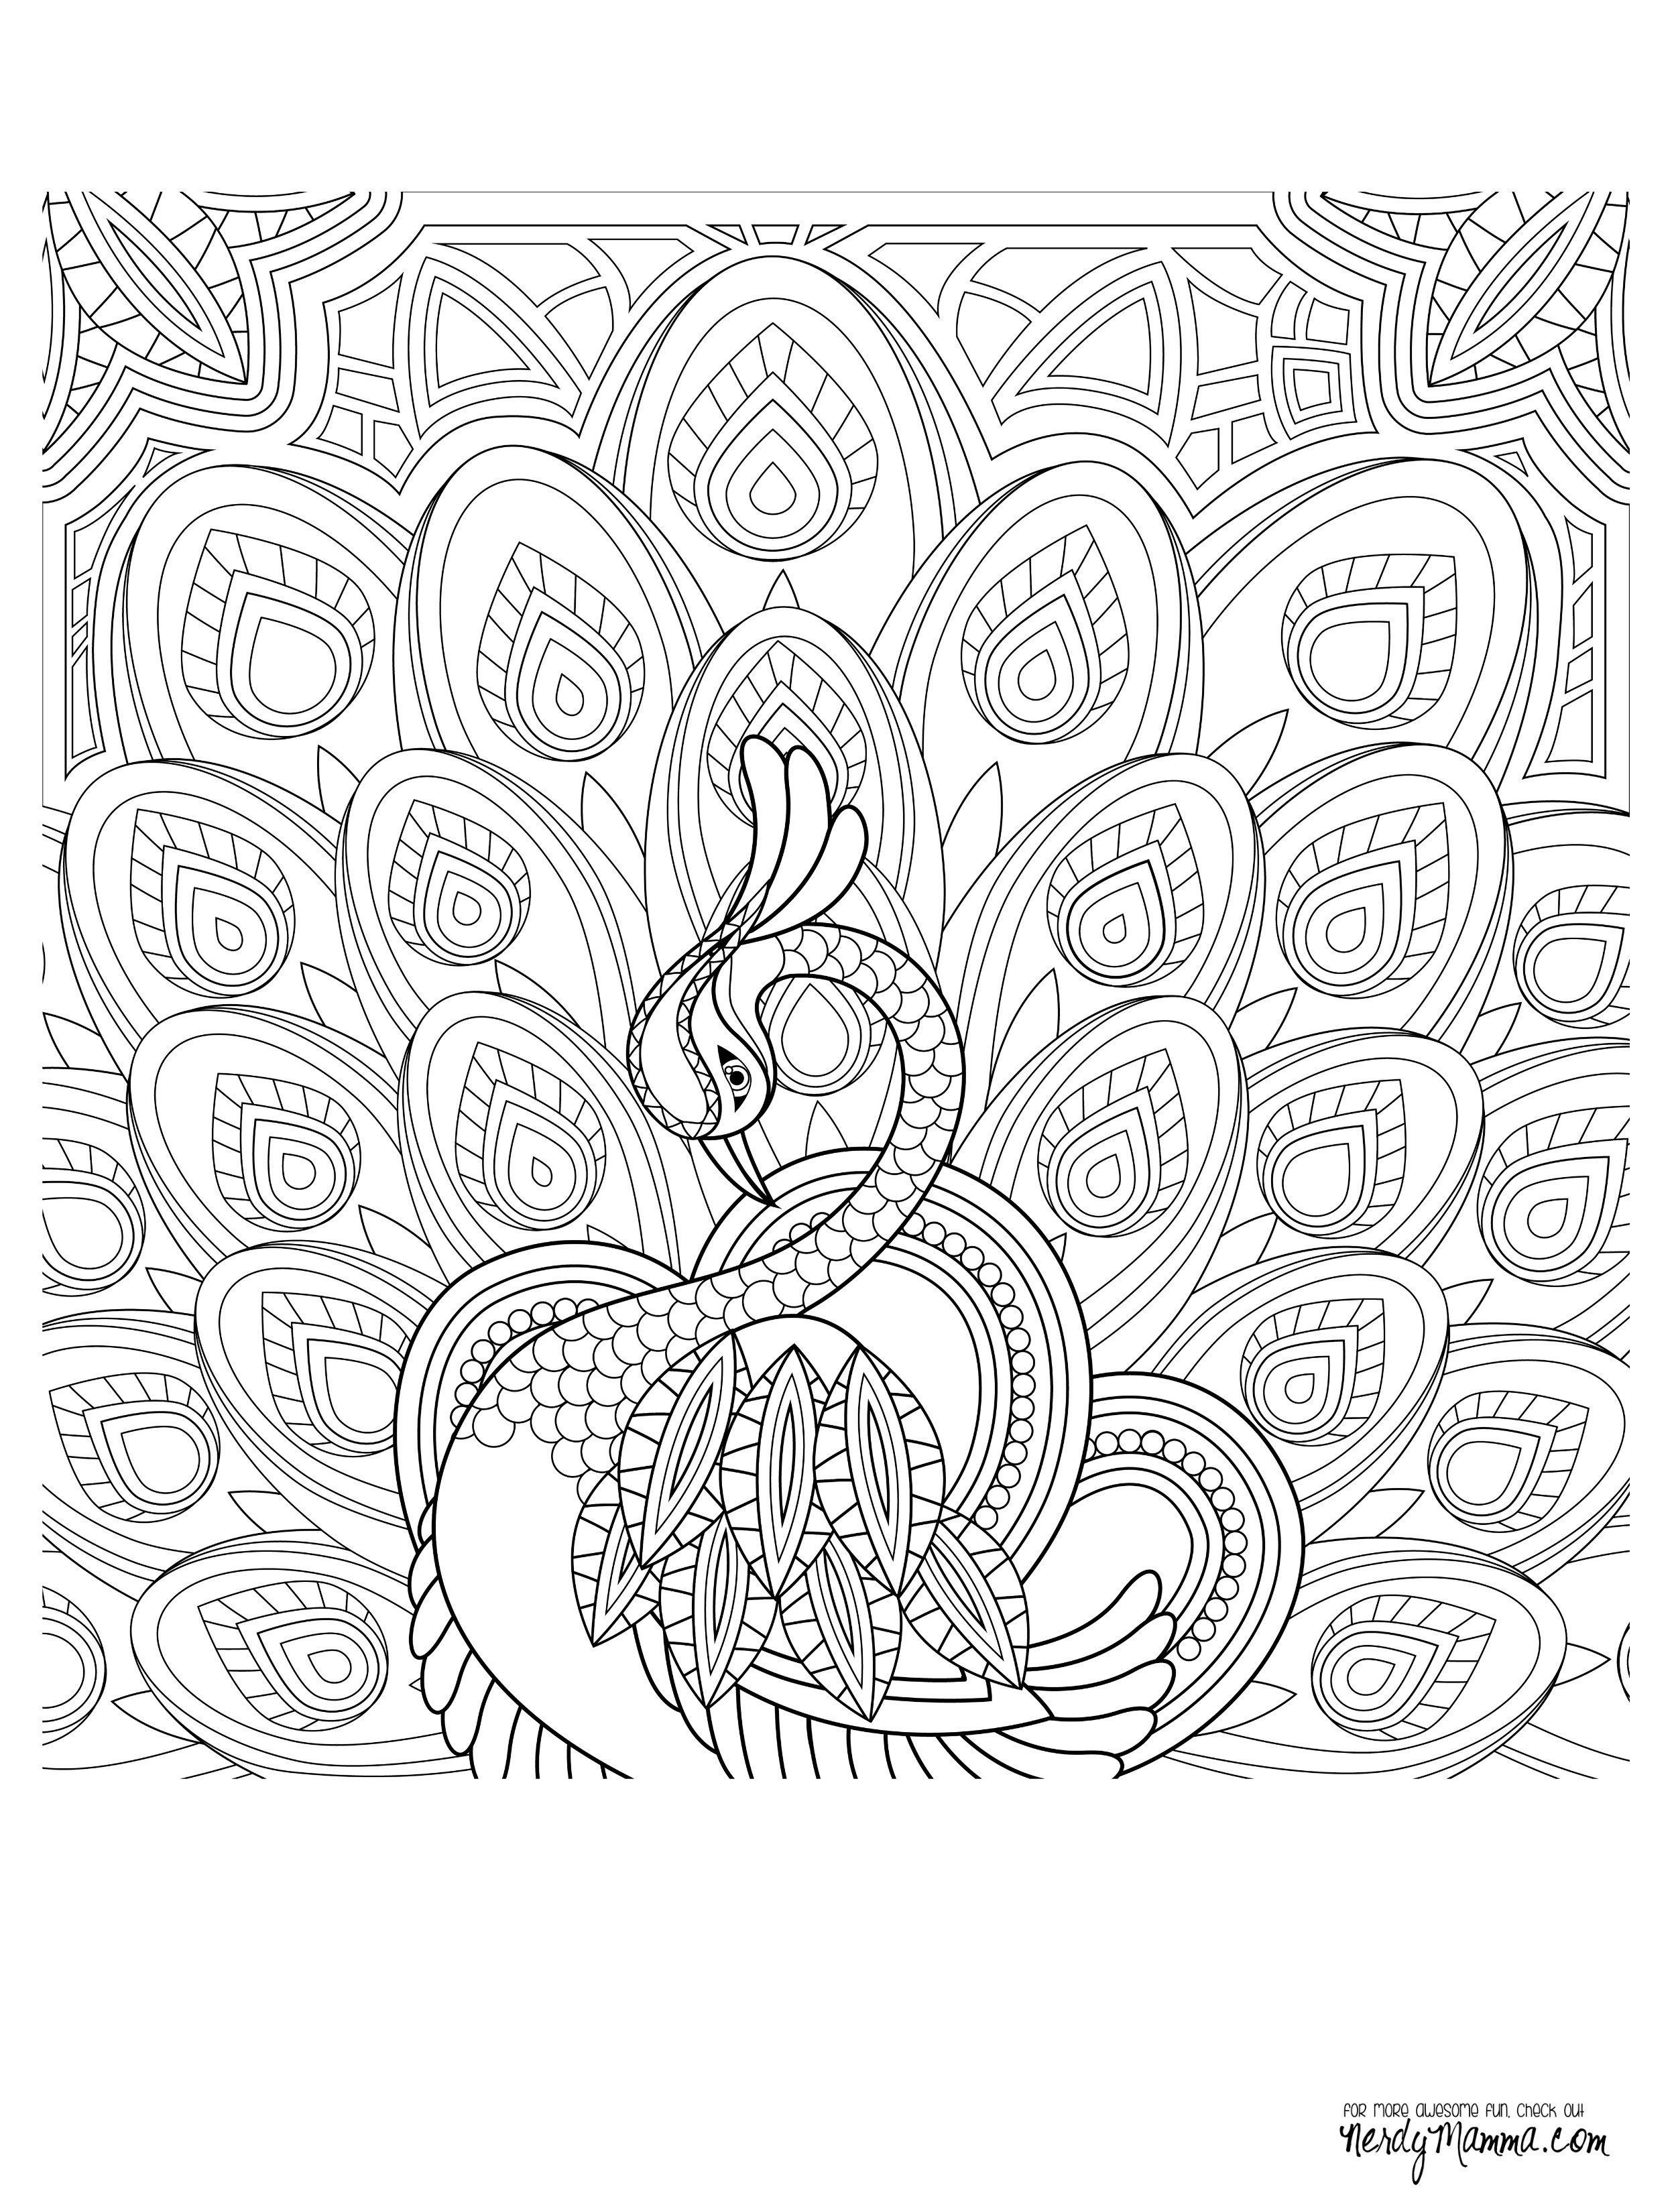 Coloring Pages In Color - Printable Pages to Color Colouring In New New Colouring Family C3 82